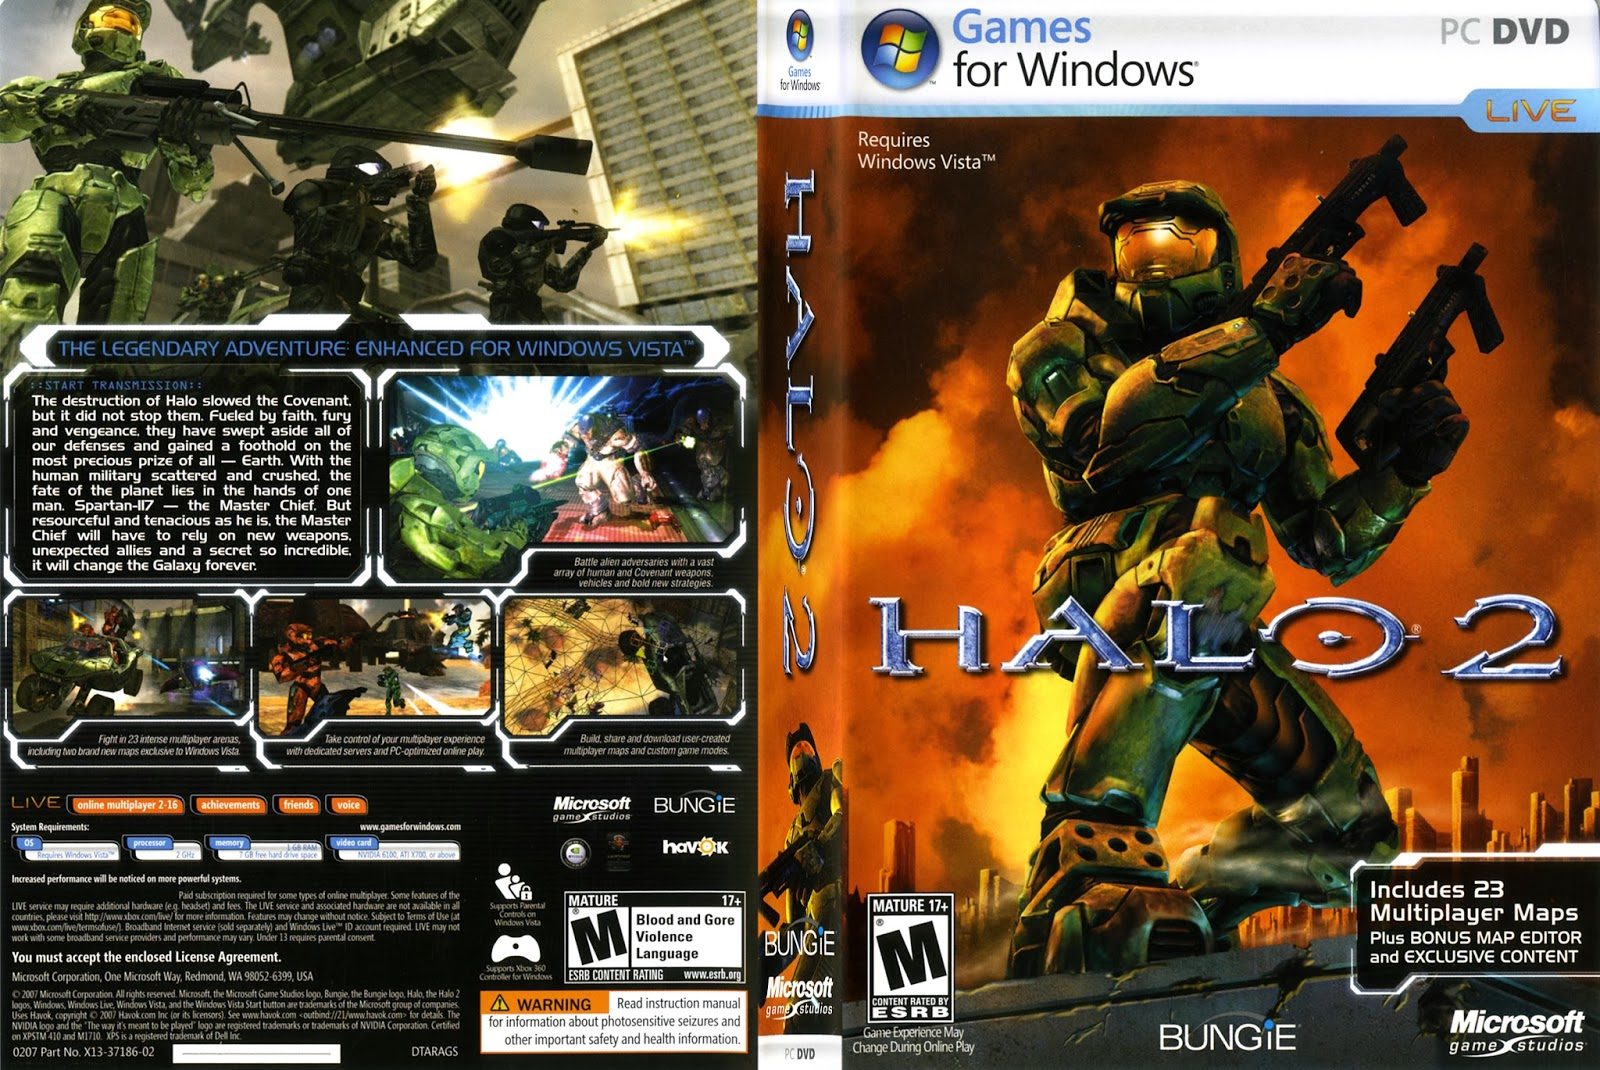 Halo 2 PC DVD Capa